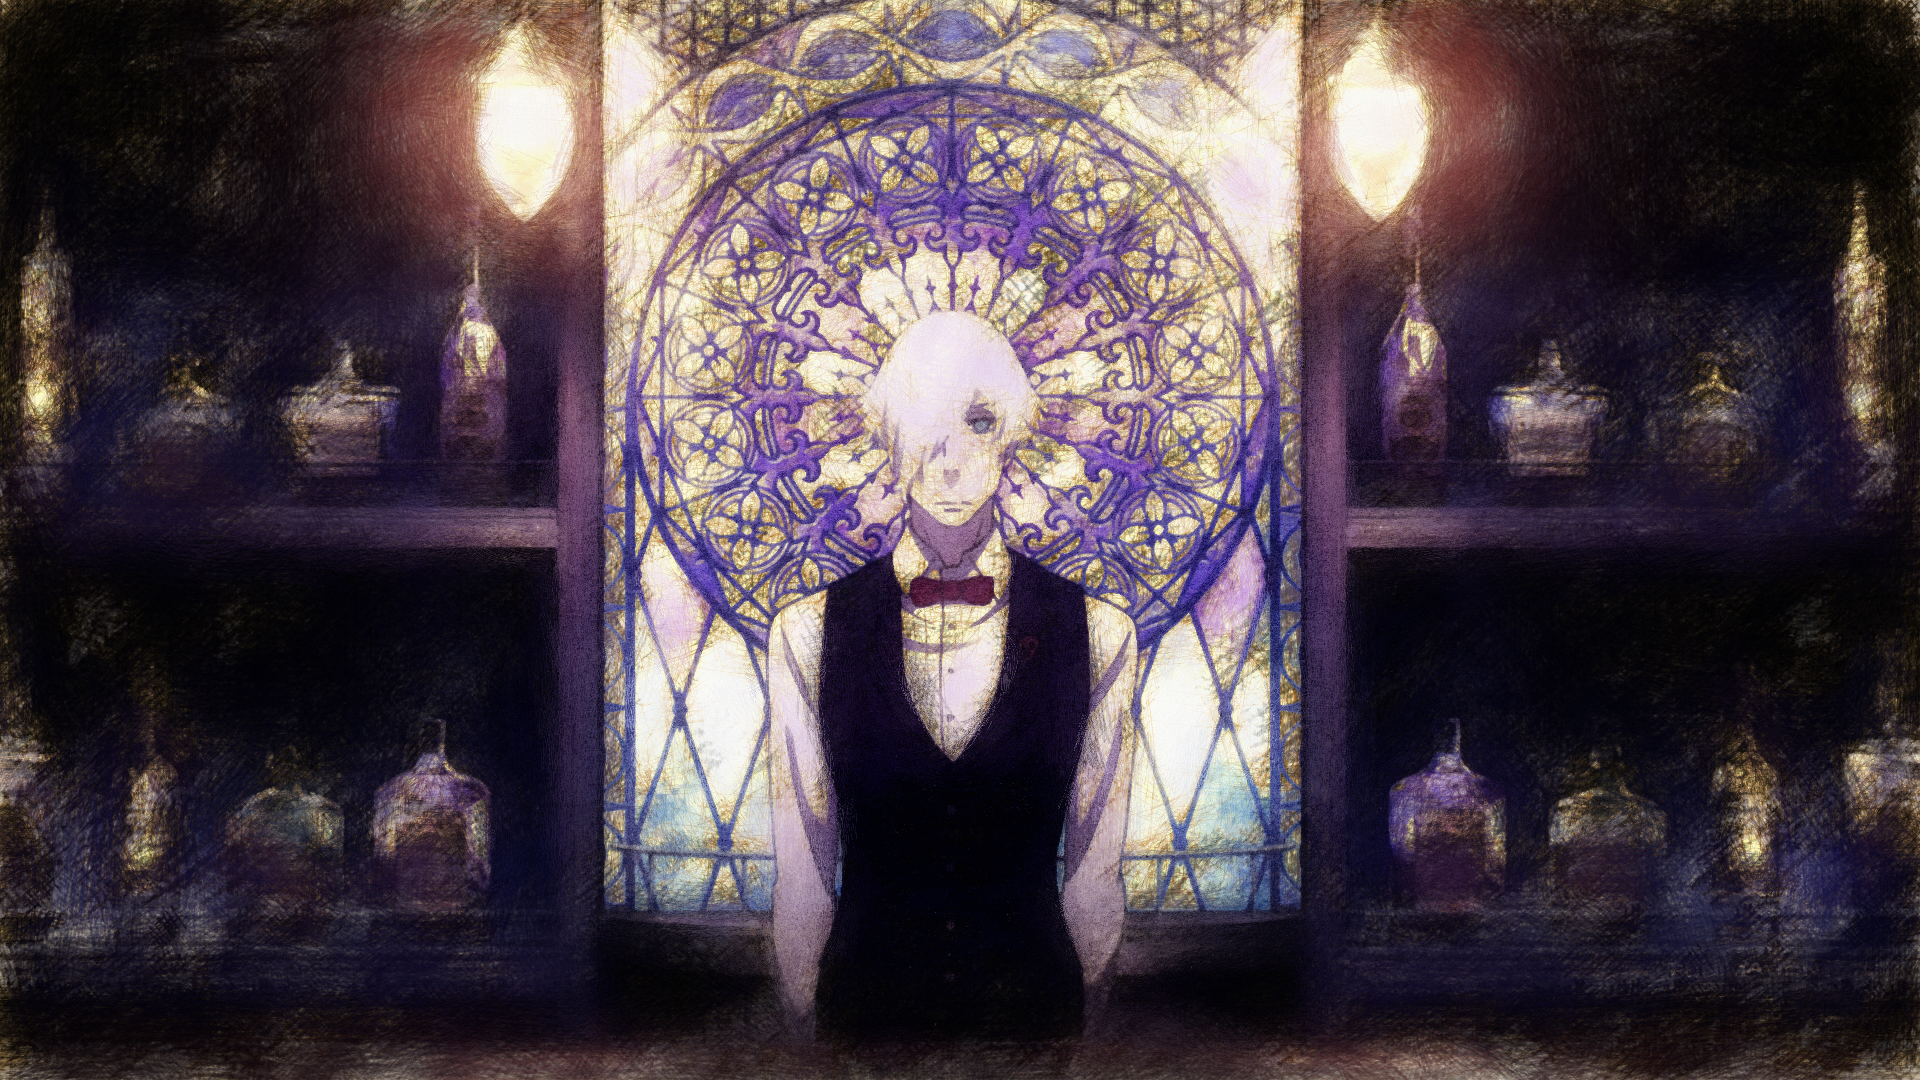 Death Parade HD Wallpaper Background Image 1920x1080 ID 1920x1080